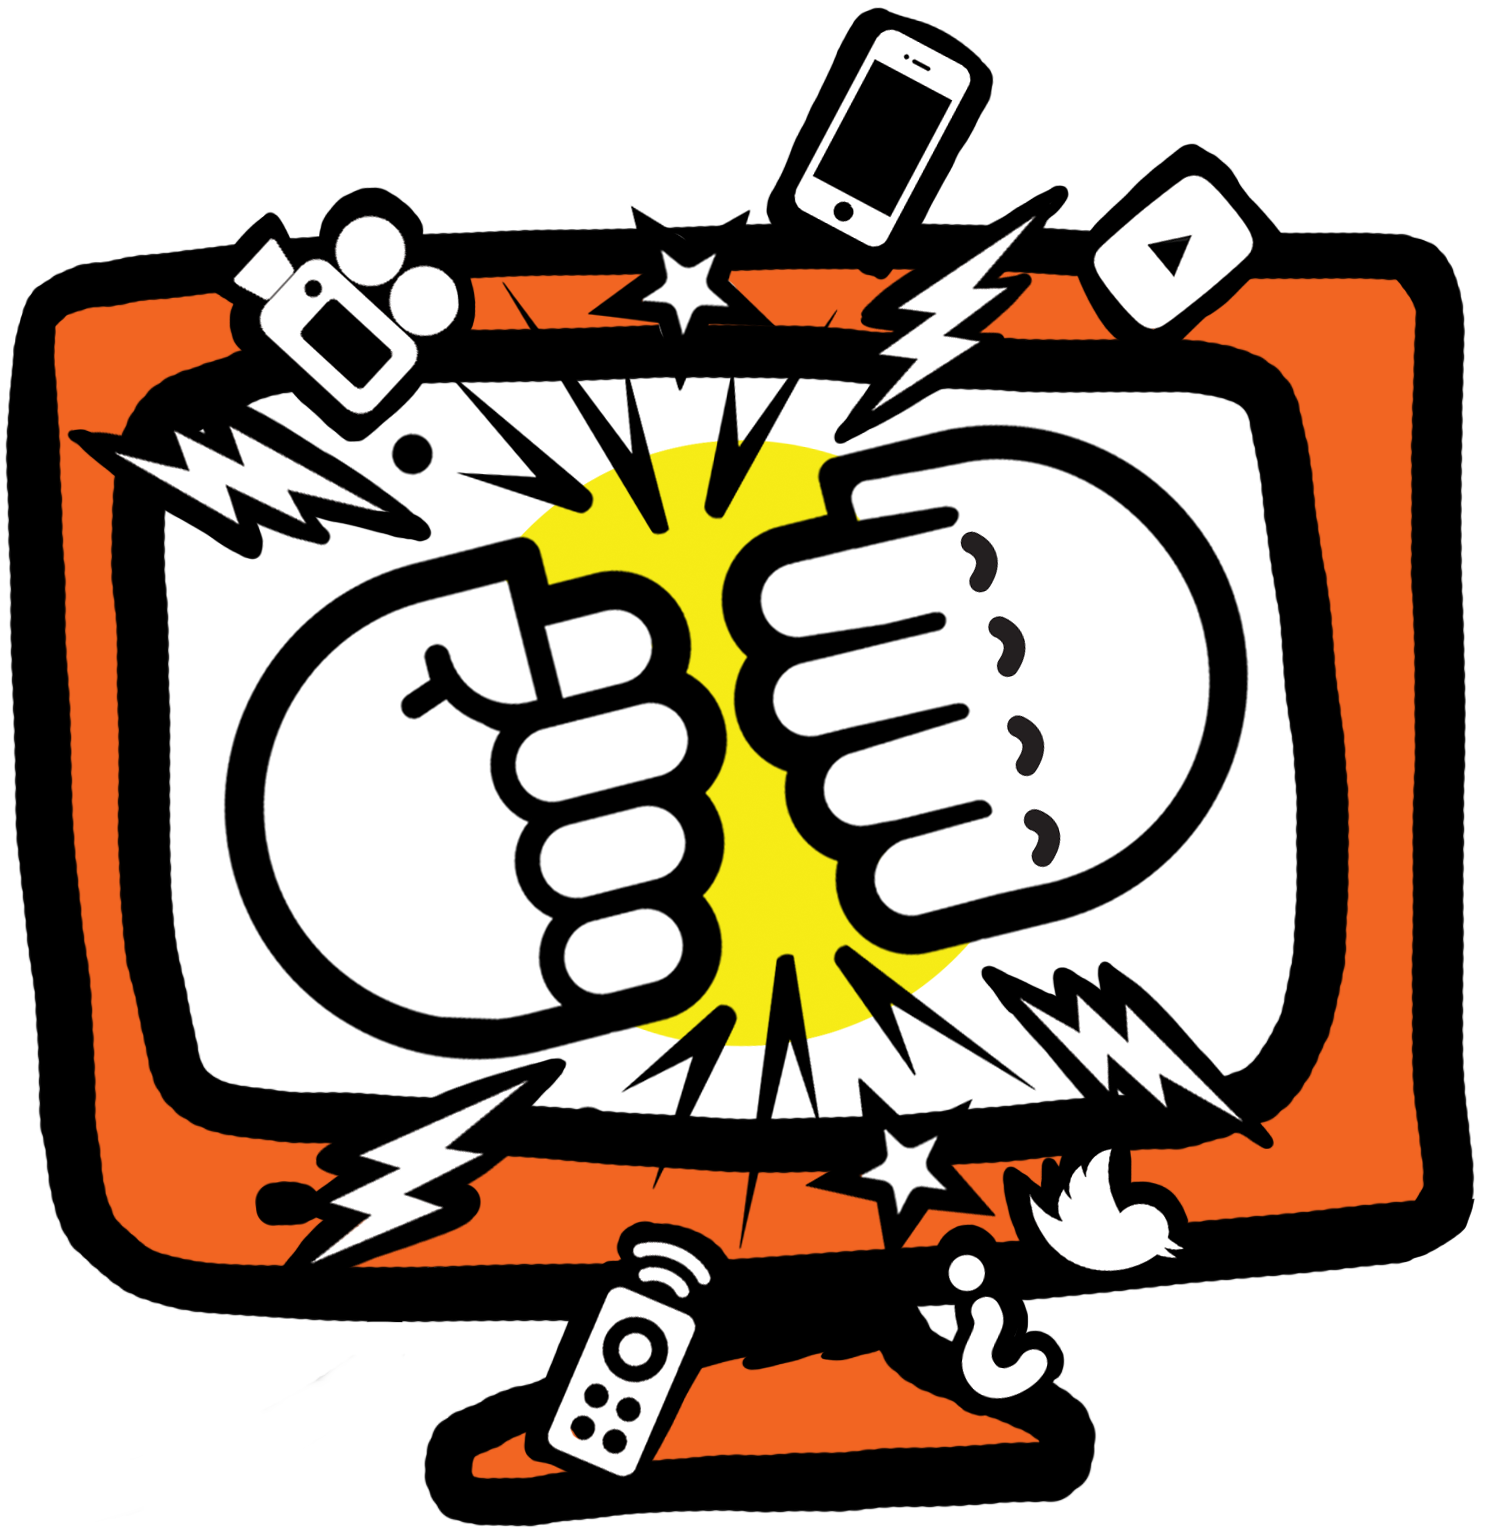 Bangarang broadcast tv and. Square clipart telly